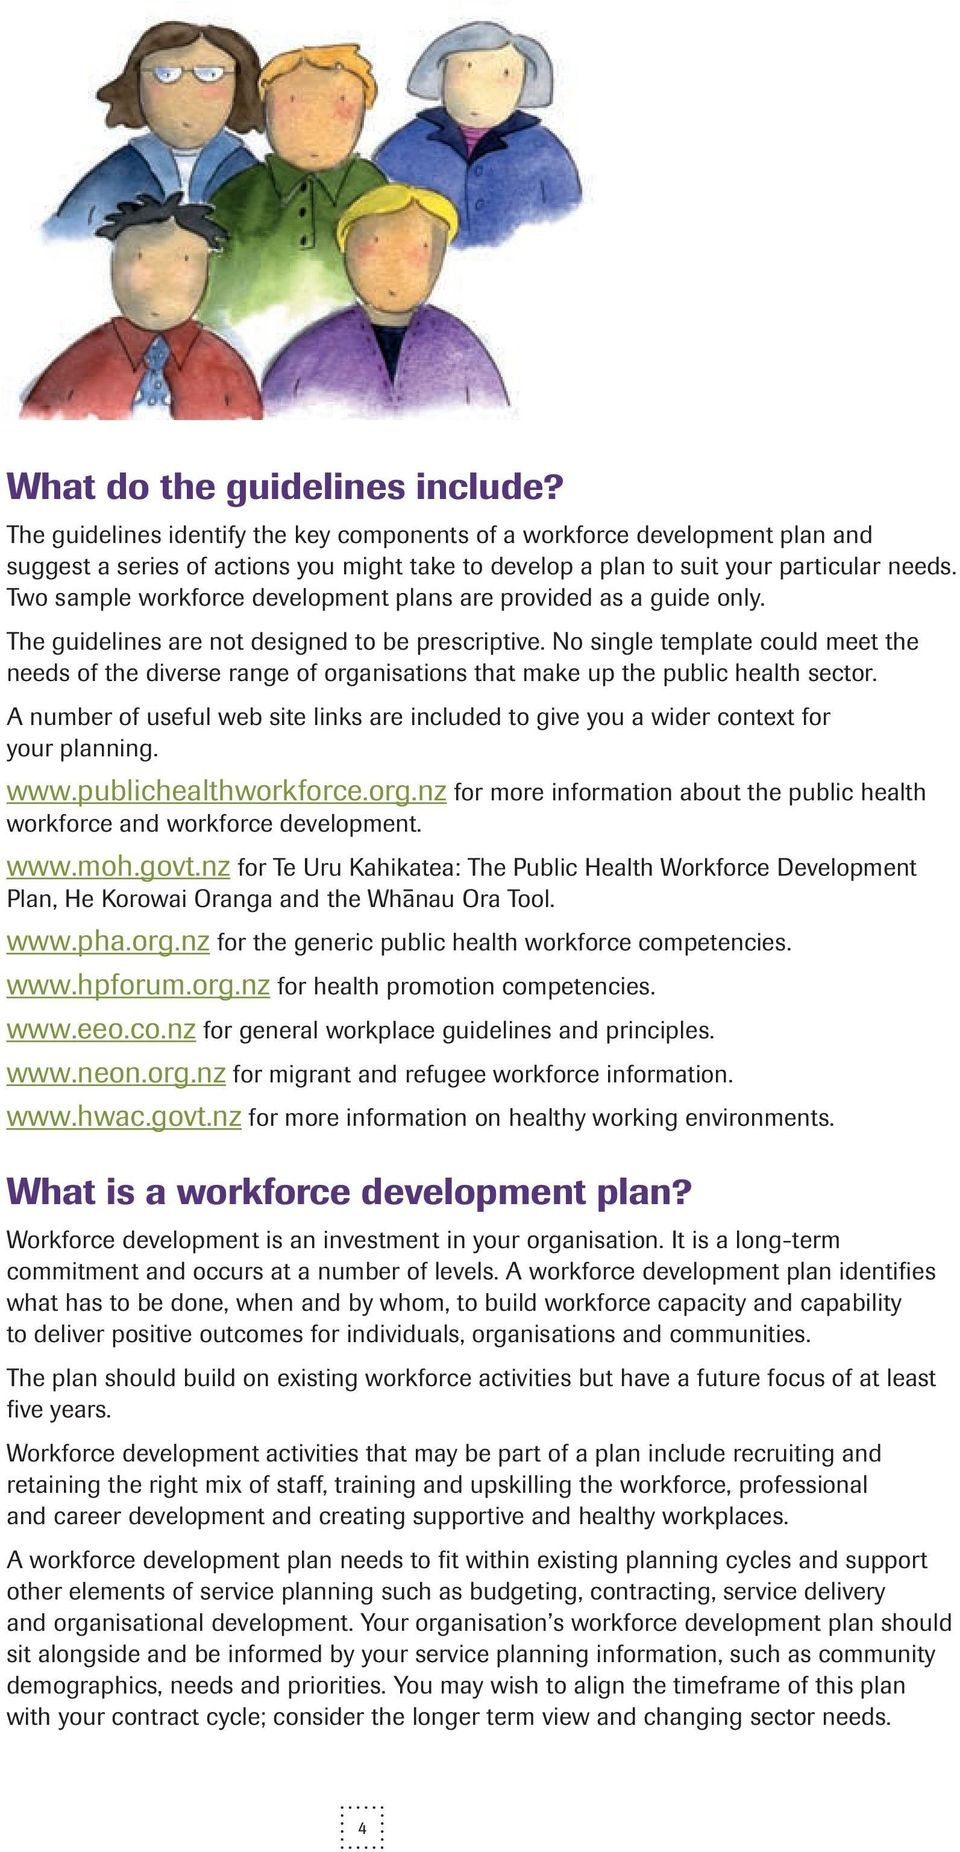 Two sample workforce development plans are provided as a guide only. The guidelines are not designed to be prescriptive.